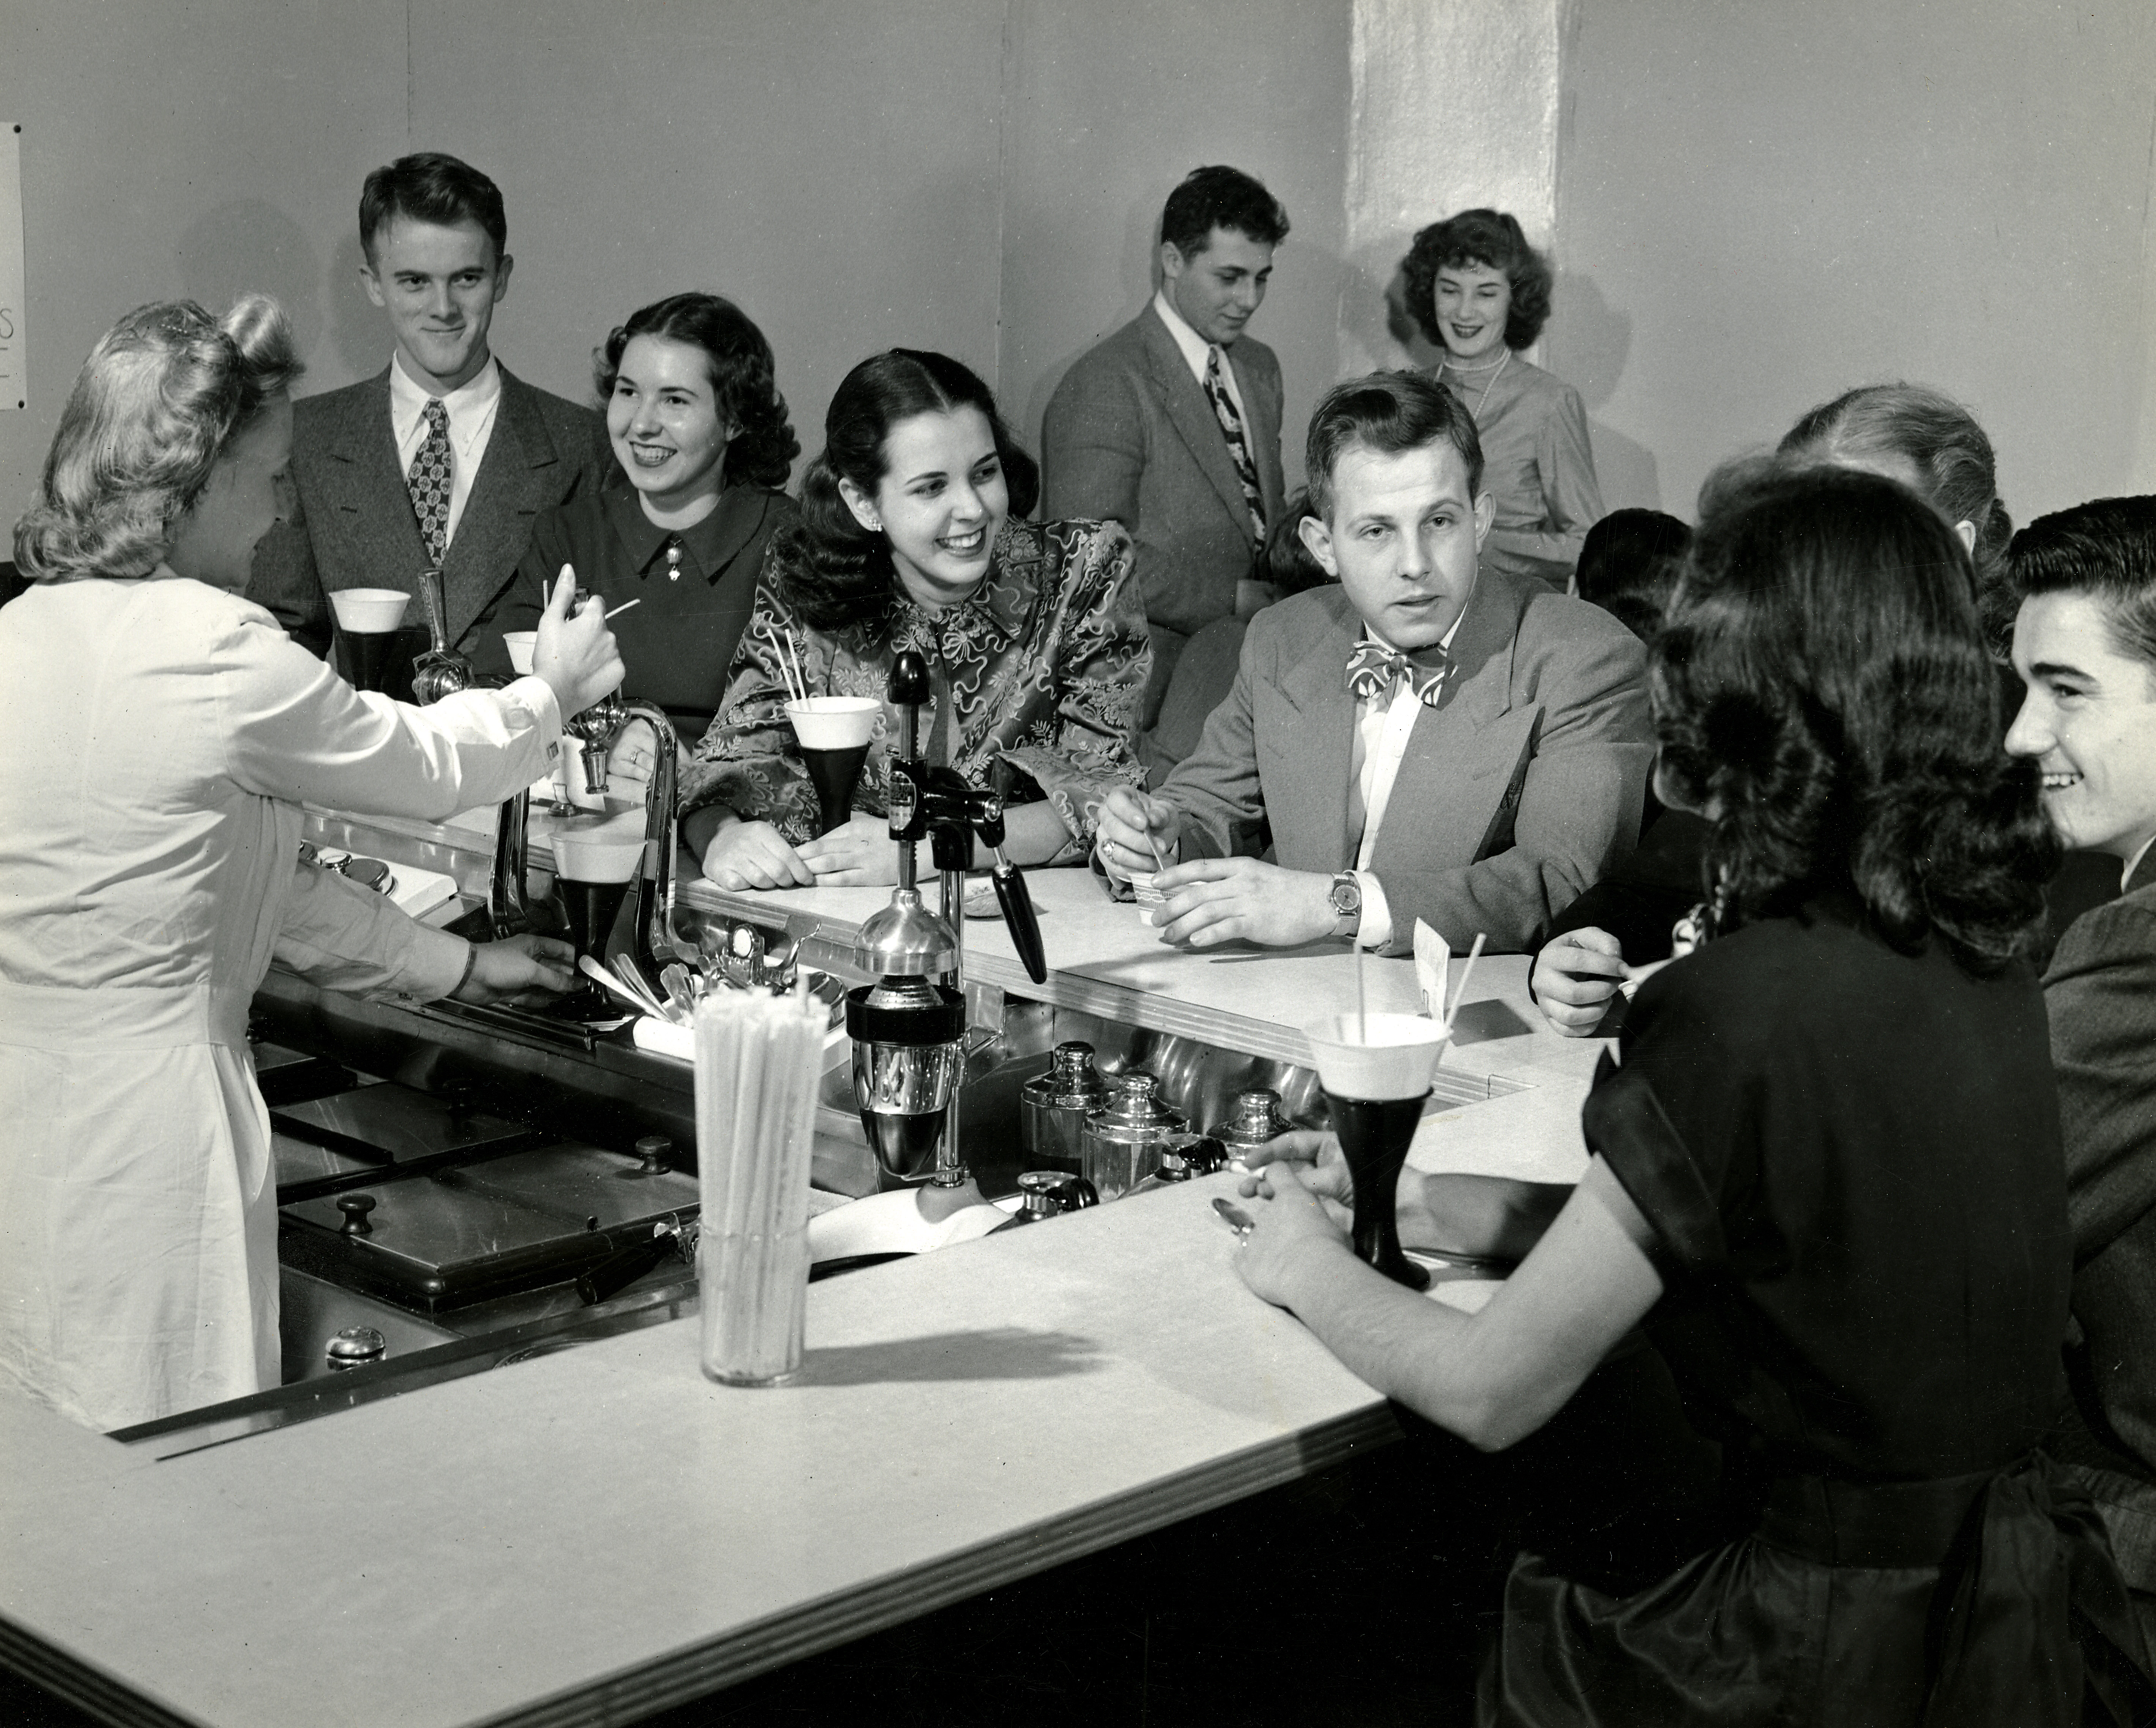 Men and women at a soda shop counter